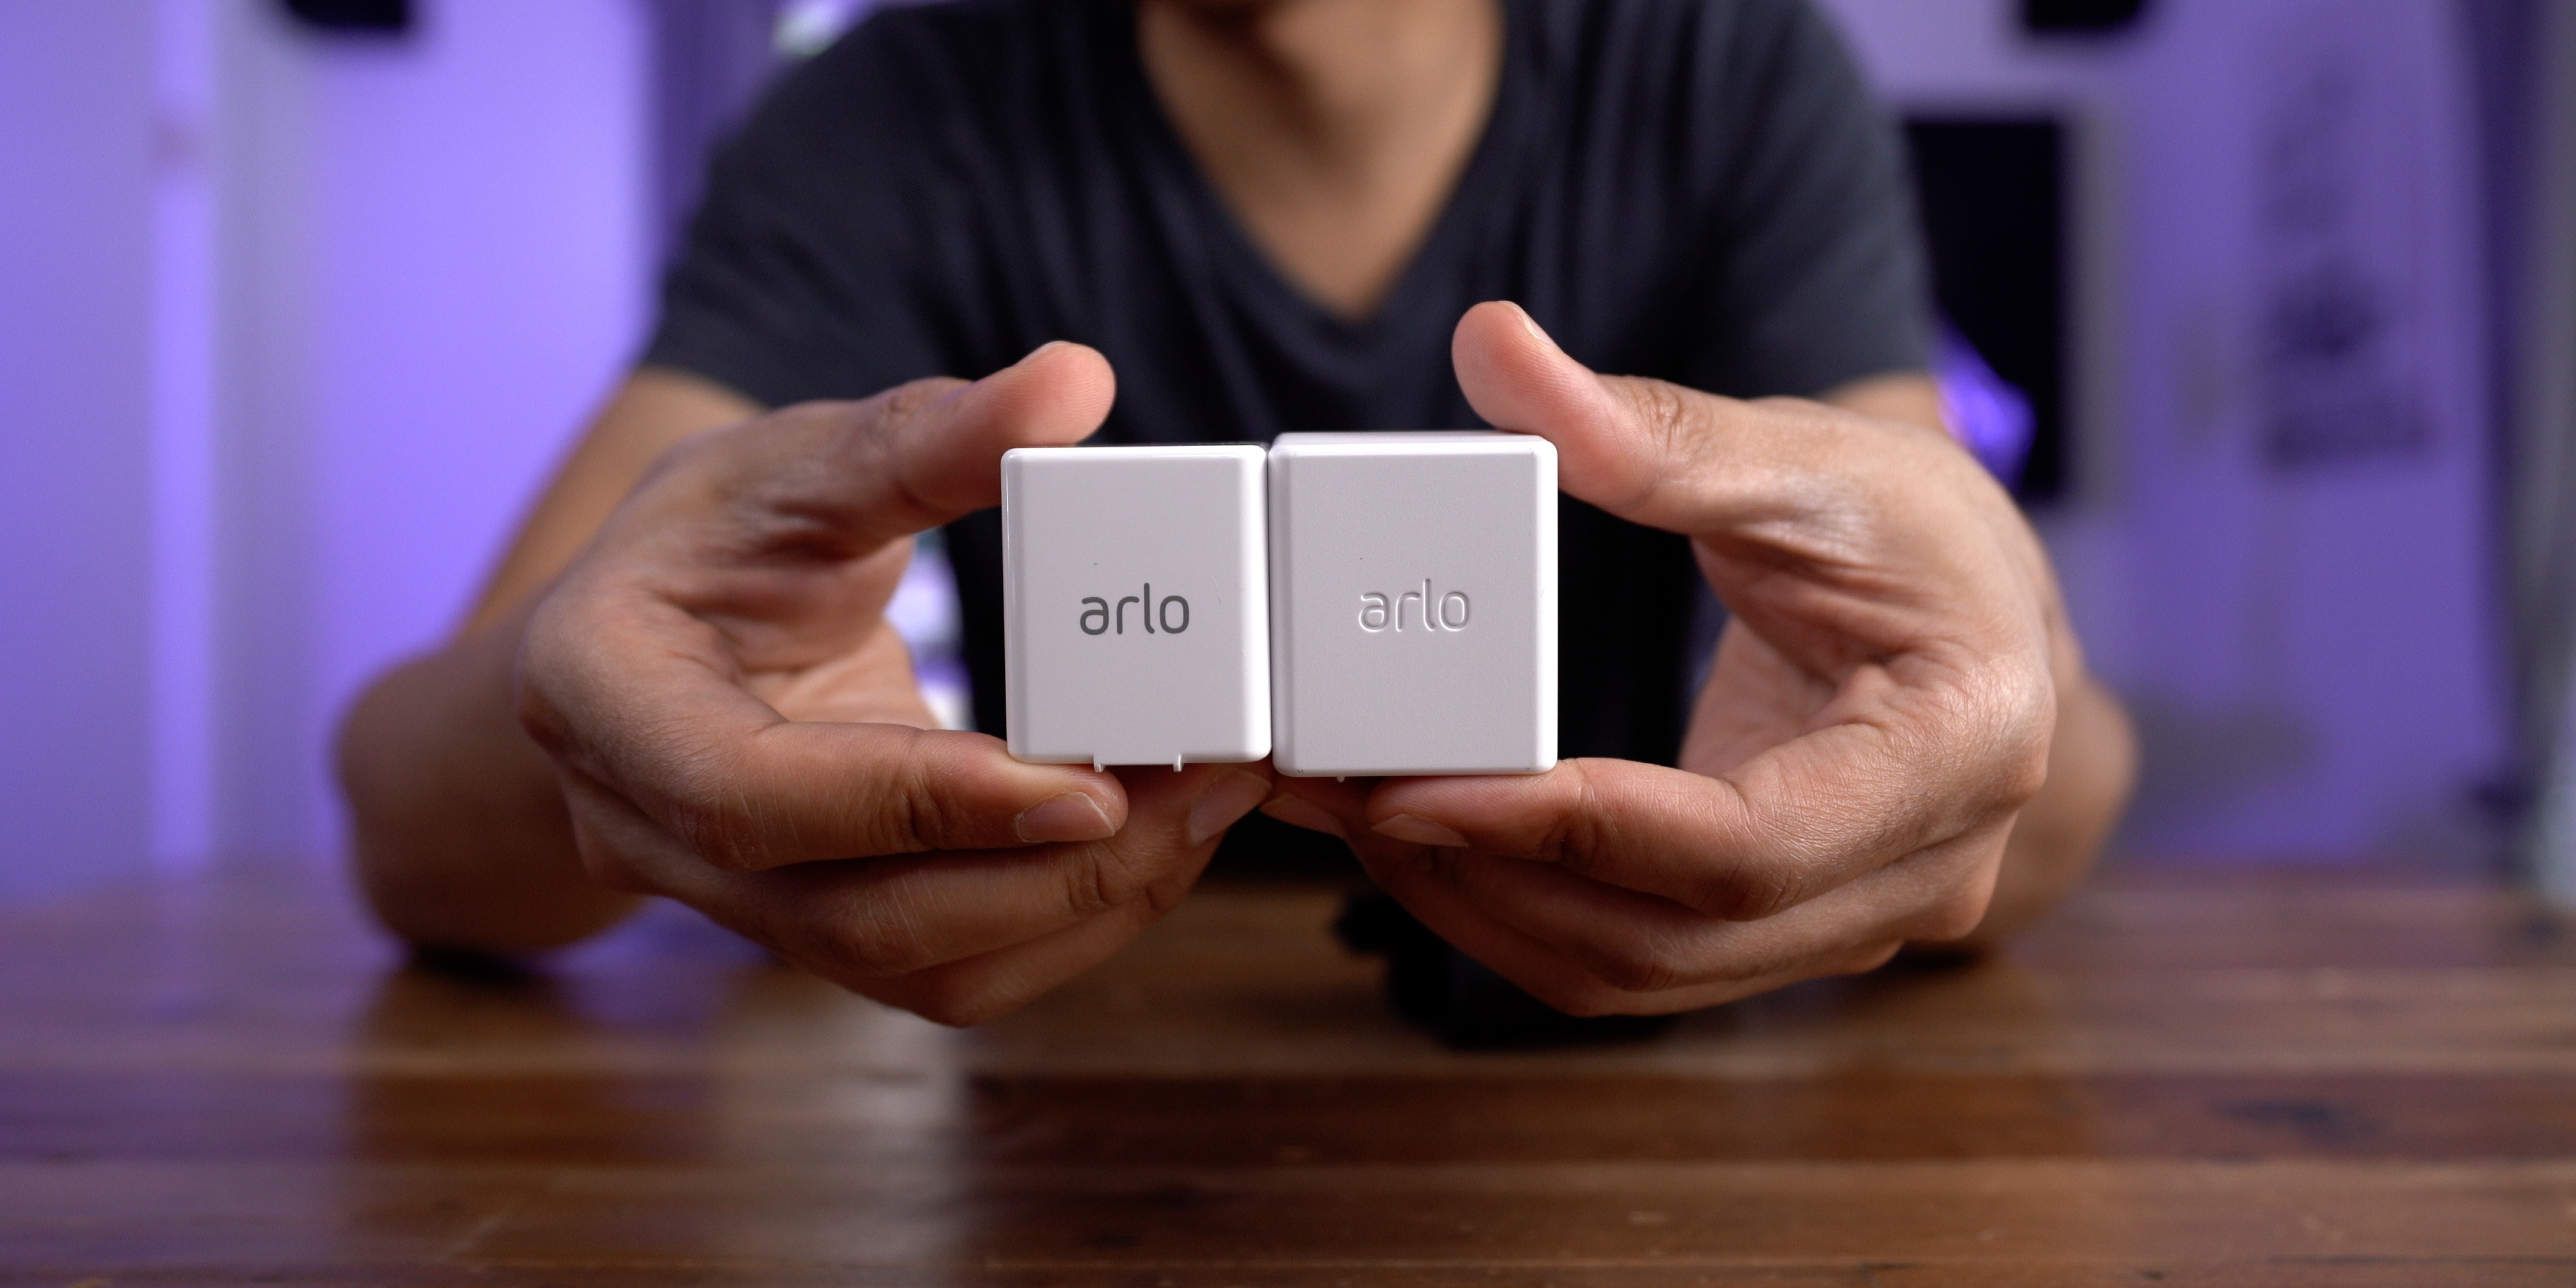 Arlo Pro 2 vs Arlo Ultra Batteries